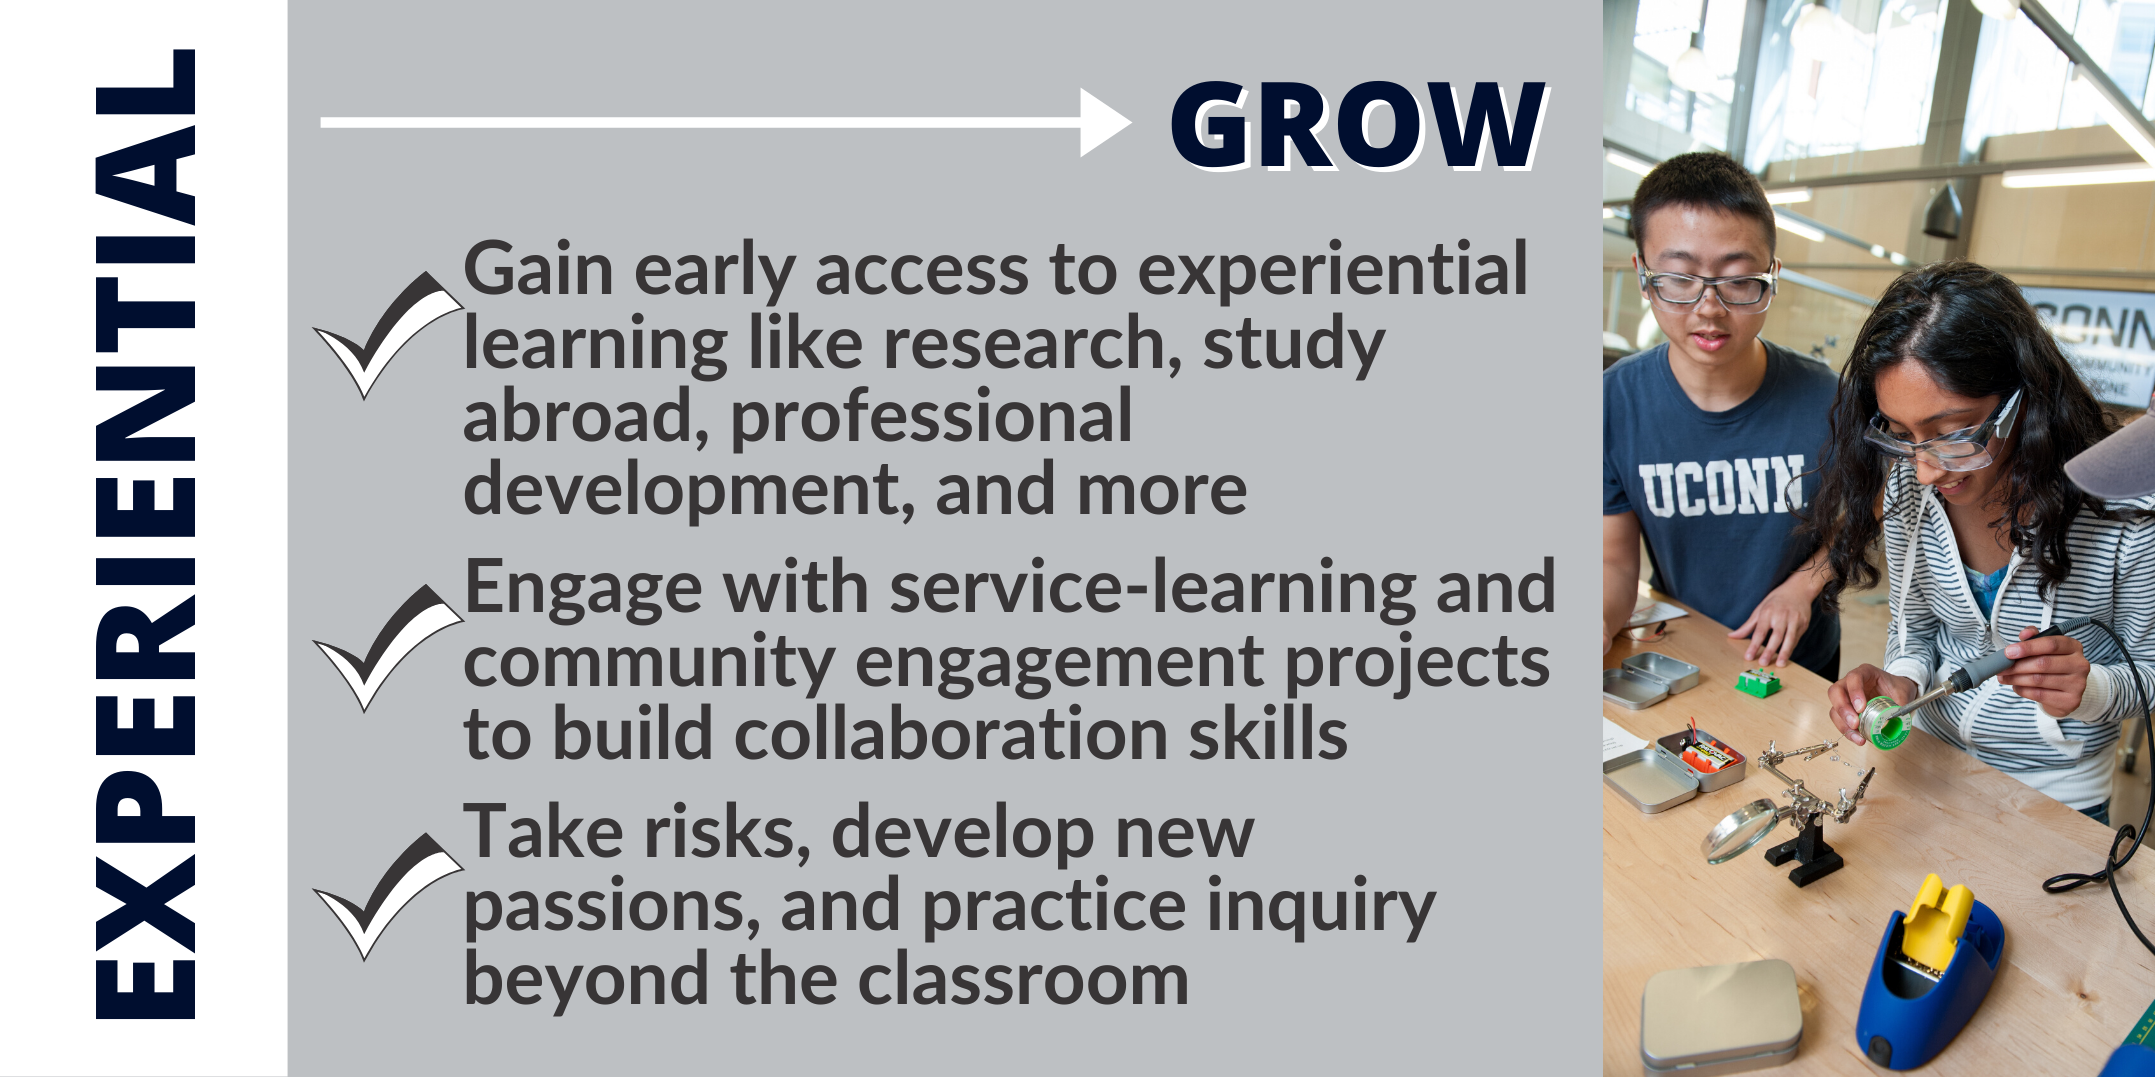 GROW: Gain early access to experiential learning like research, study abroad, professional development, and more Engage with service-learning and community engagement projects to build collaboration skills Take risks, develop new passions, and practice inquiry beyond the classroom